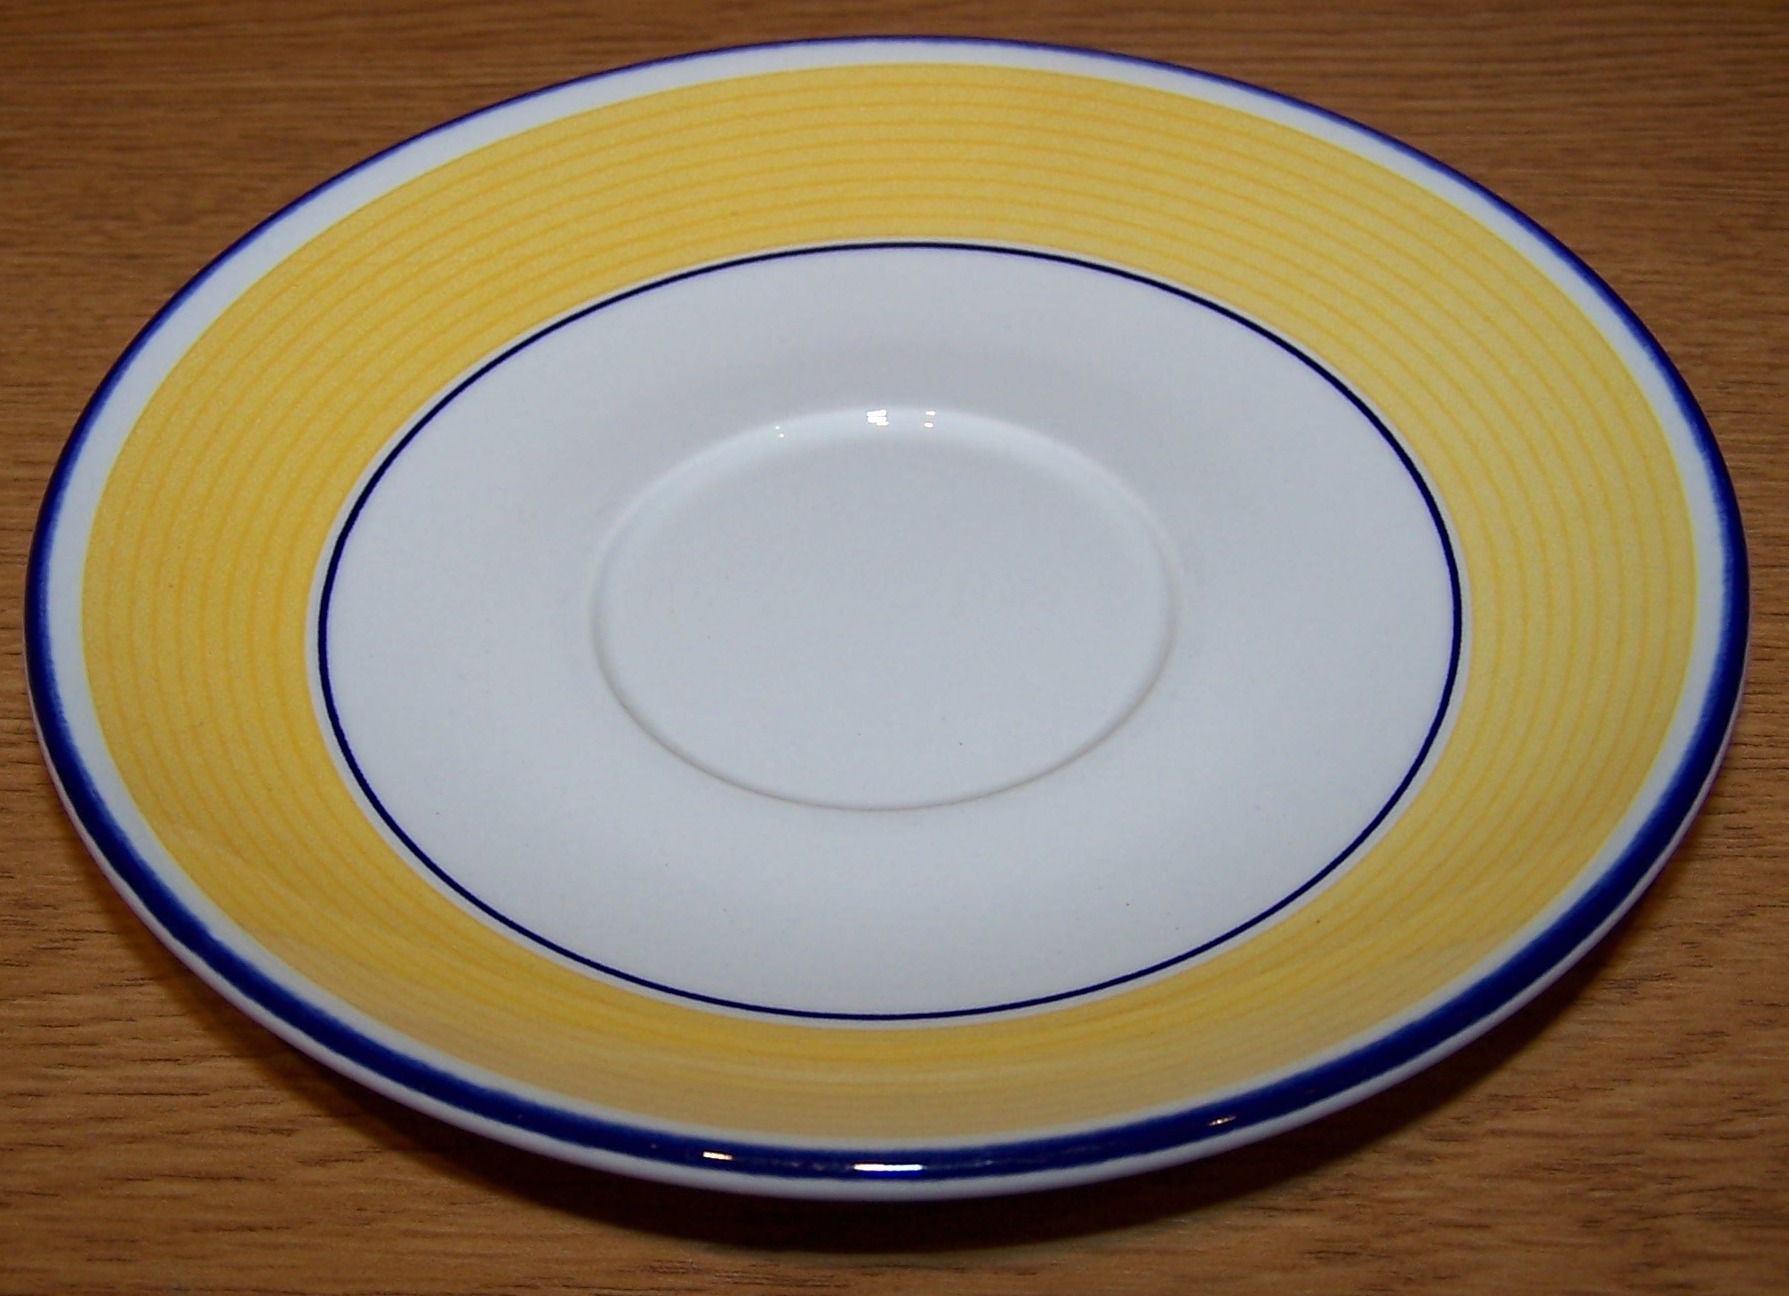 File Saucer With Yellow And White Design Jpg Wikimedia